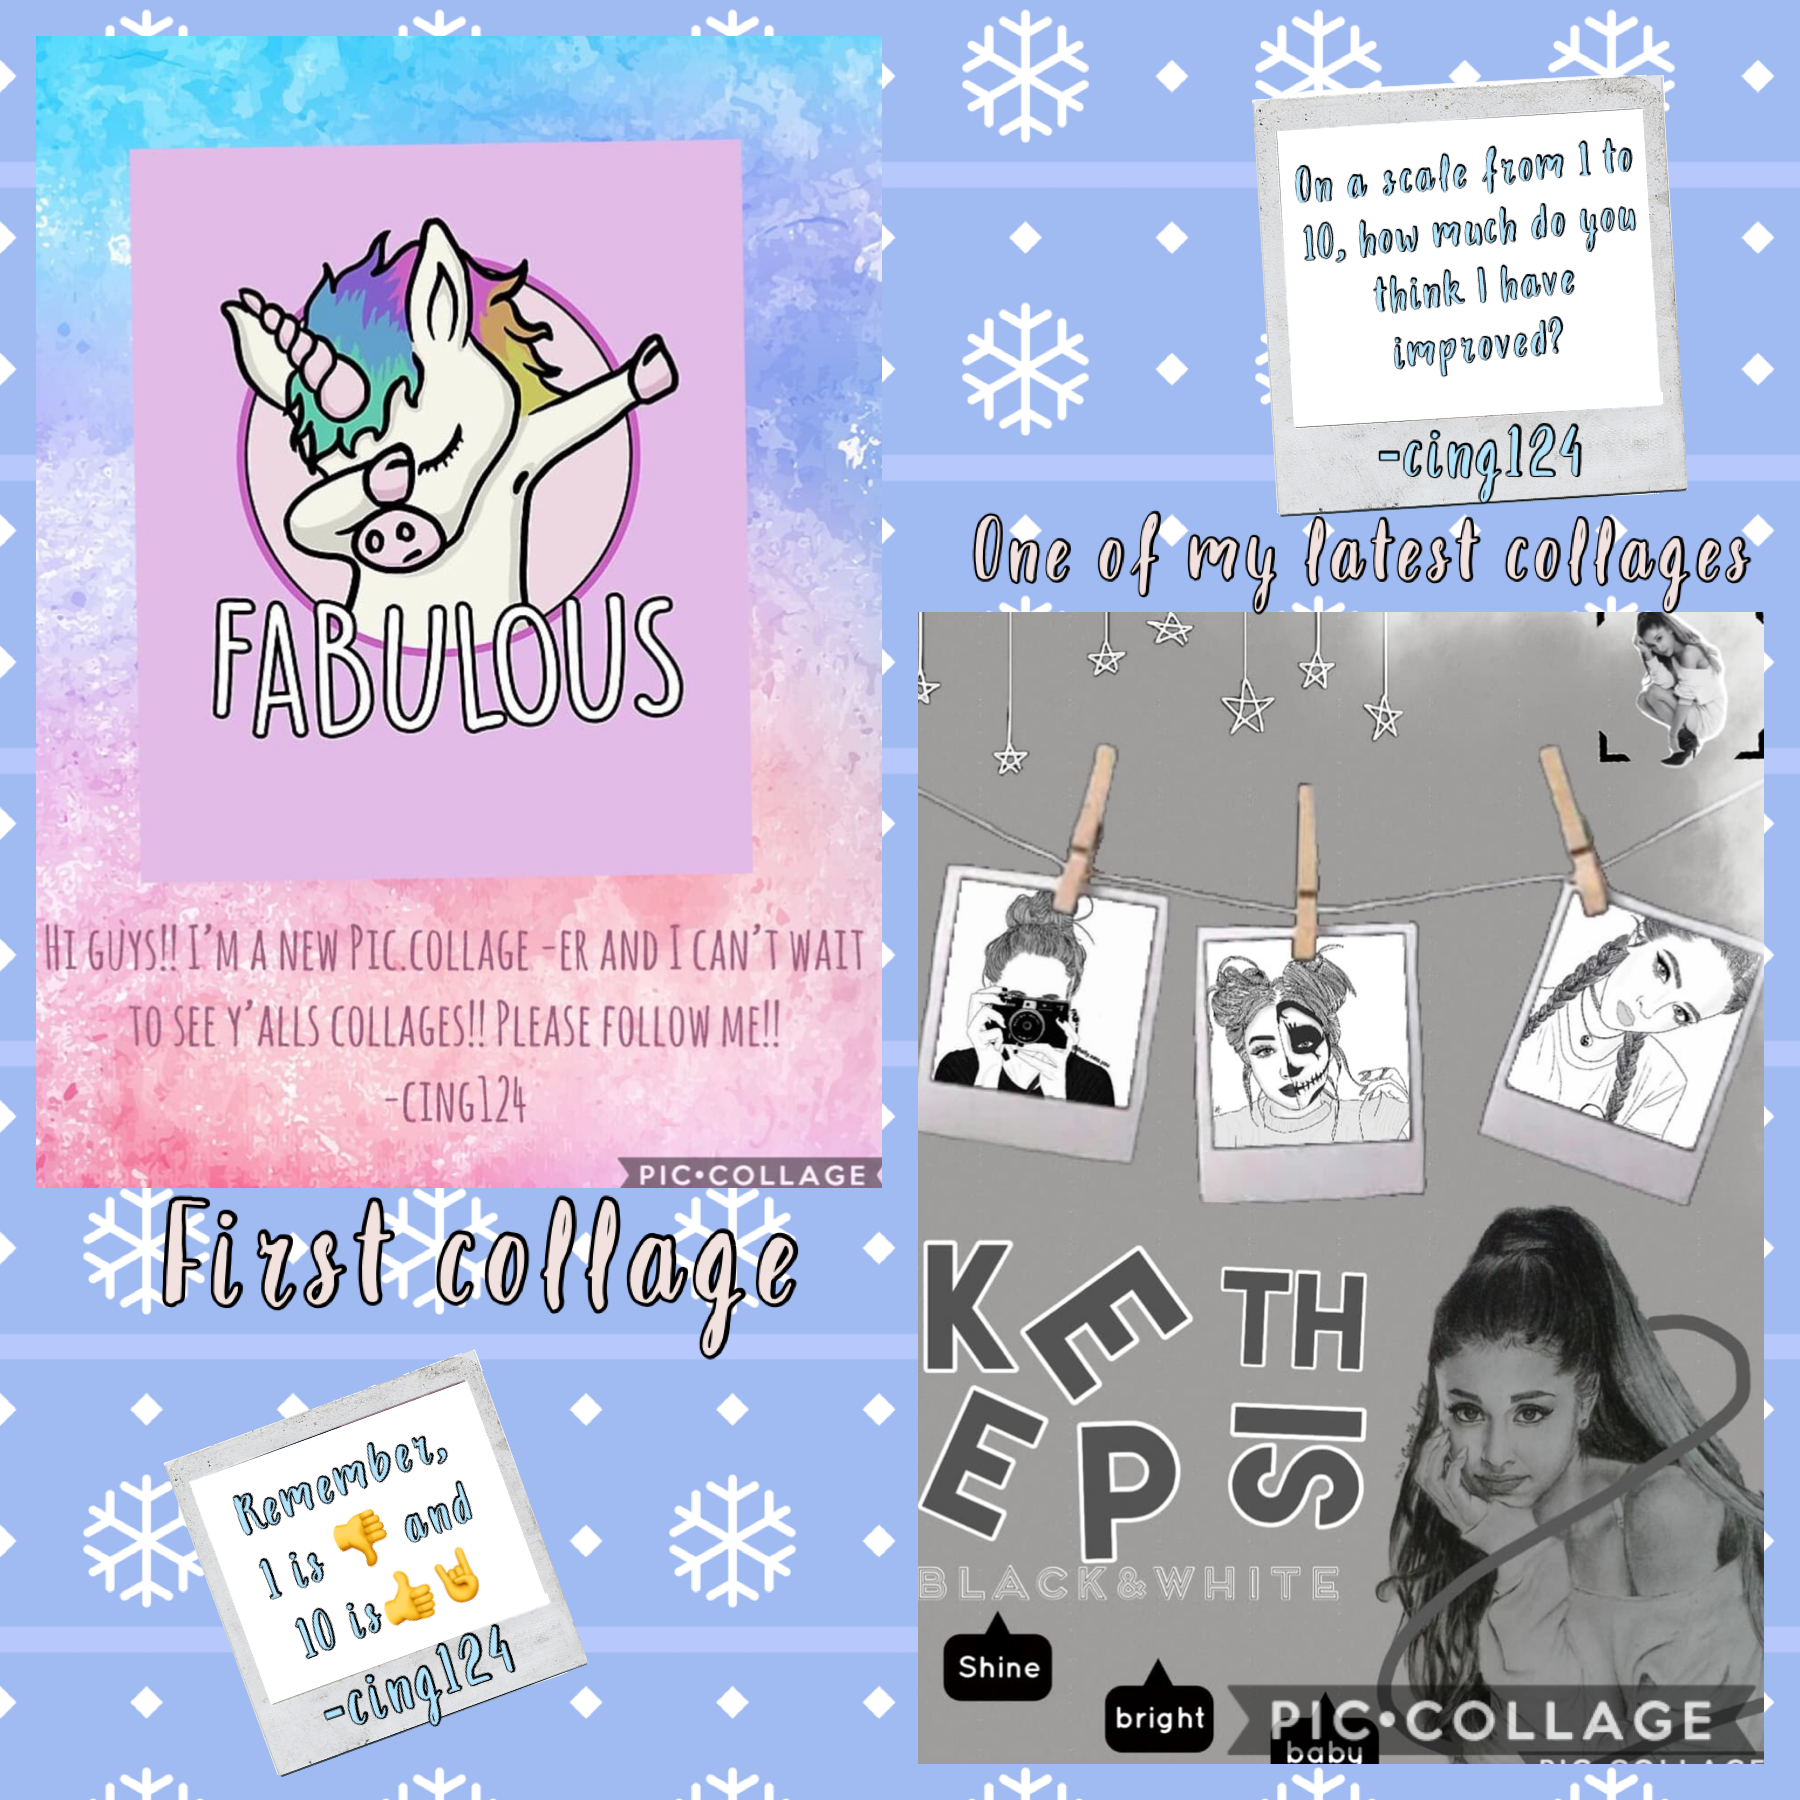 💙TAP💙 All I want for Christmas is some feedback from my followers! L💙VE YA!😘